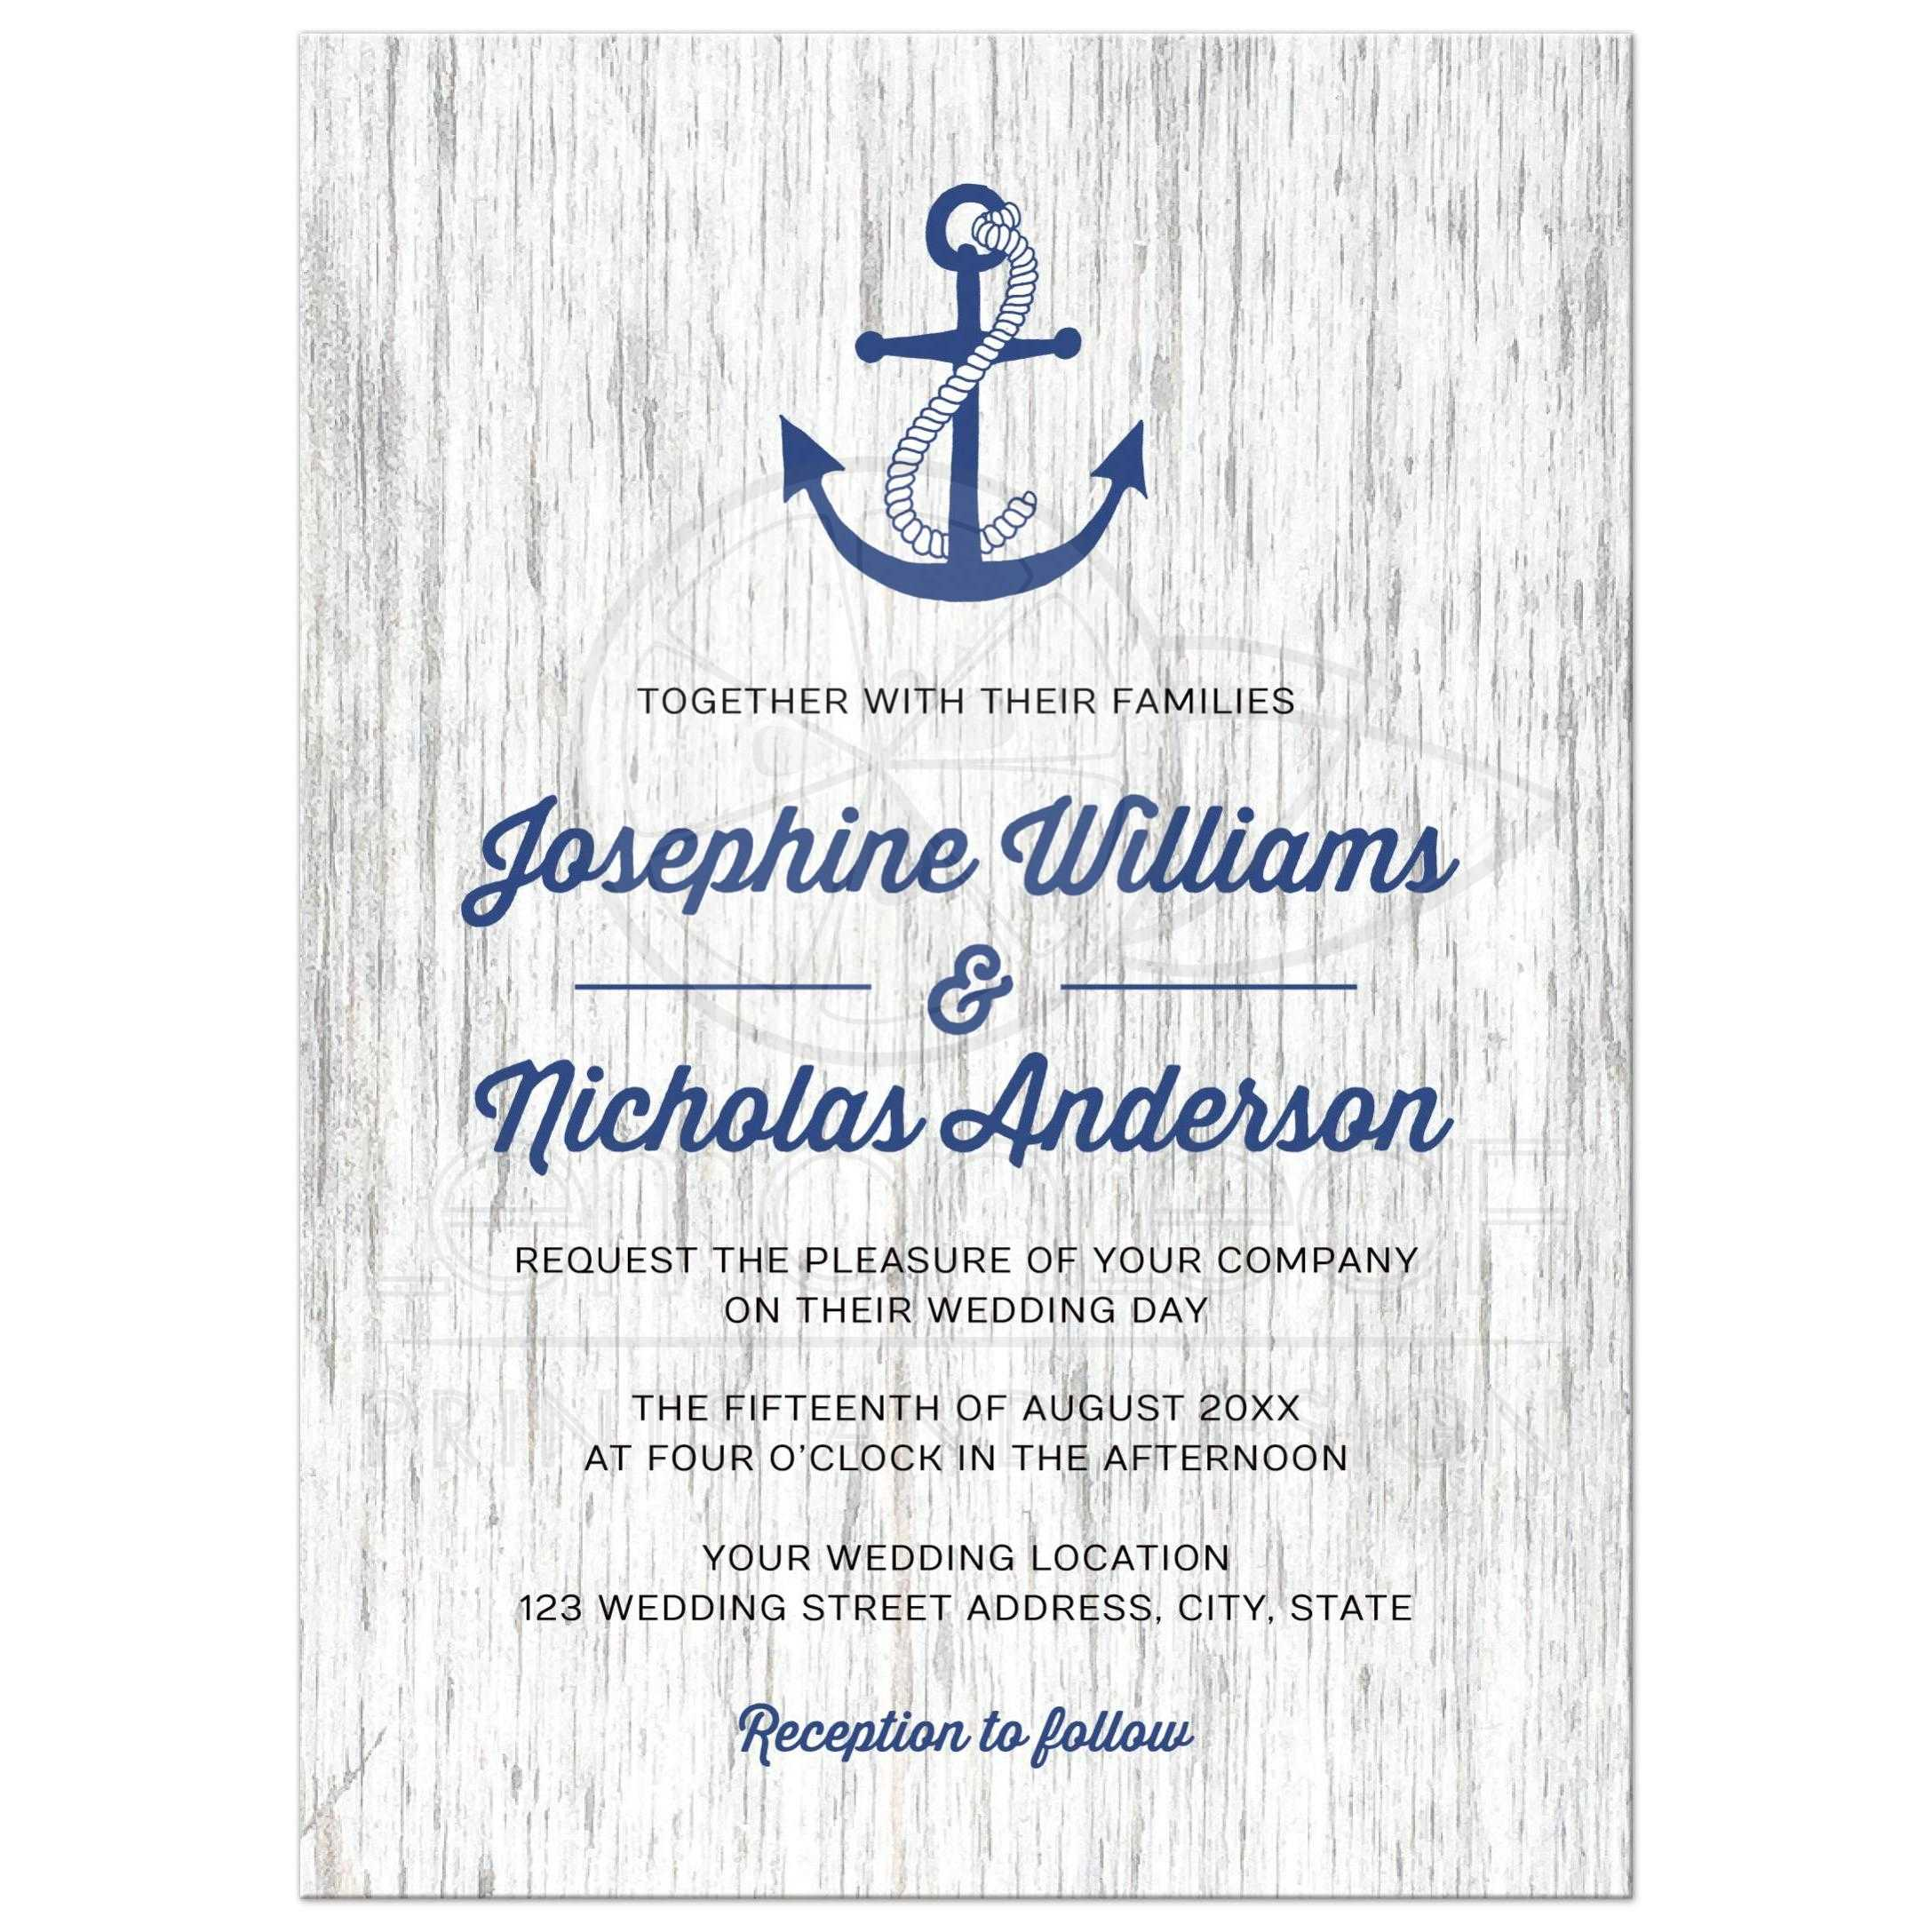 36935_Rectangle_Blue_anchor_on_rustic_barn_wood_background_wedding_invitation_azgl jz